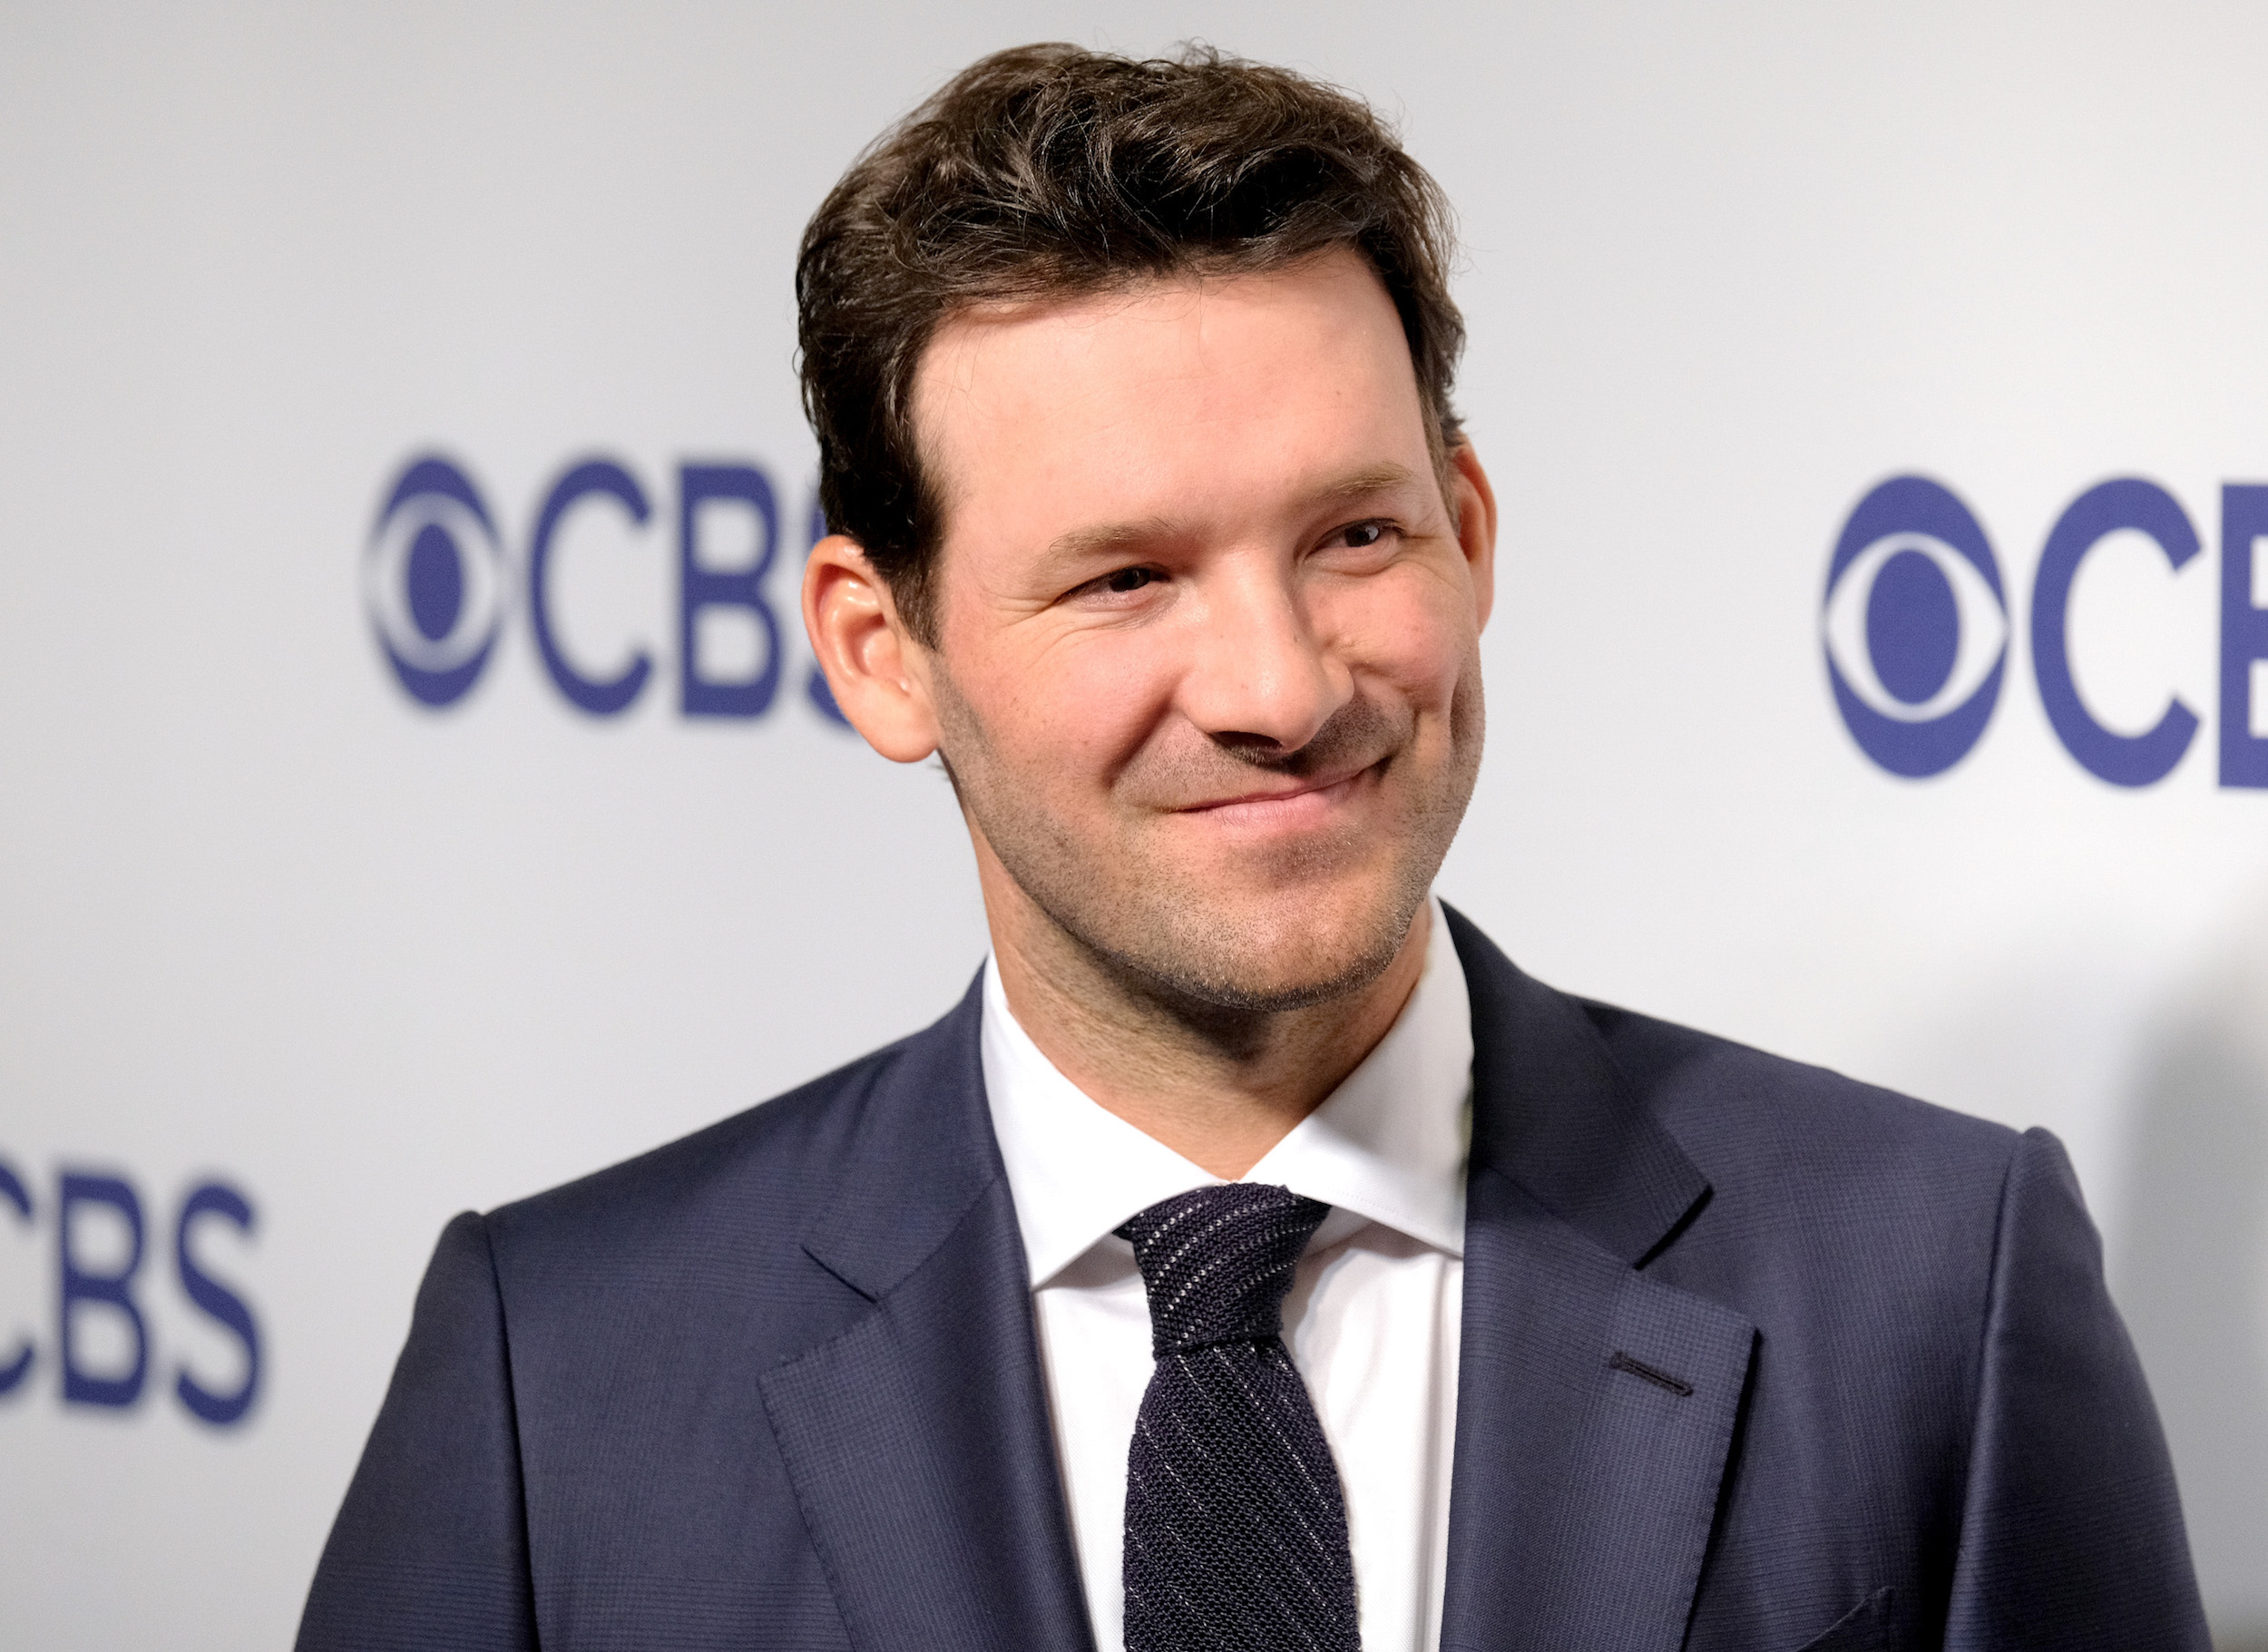 Tony Romo made his family's American Dream come true.